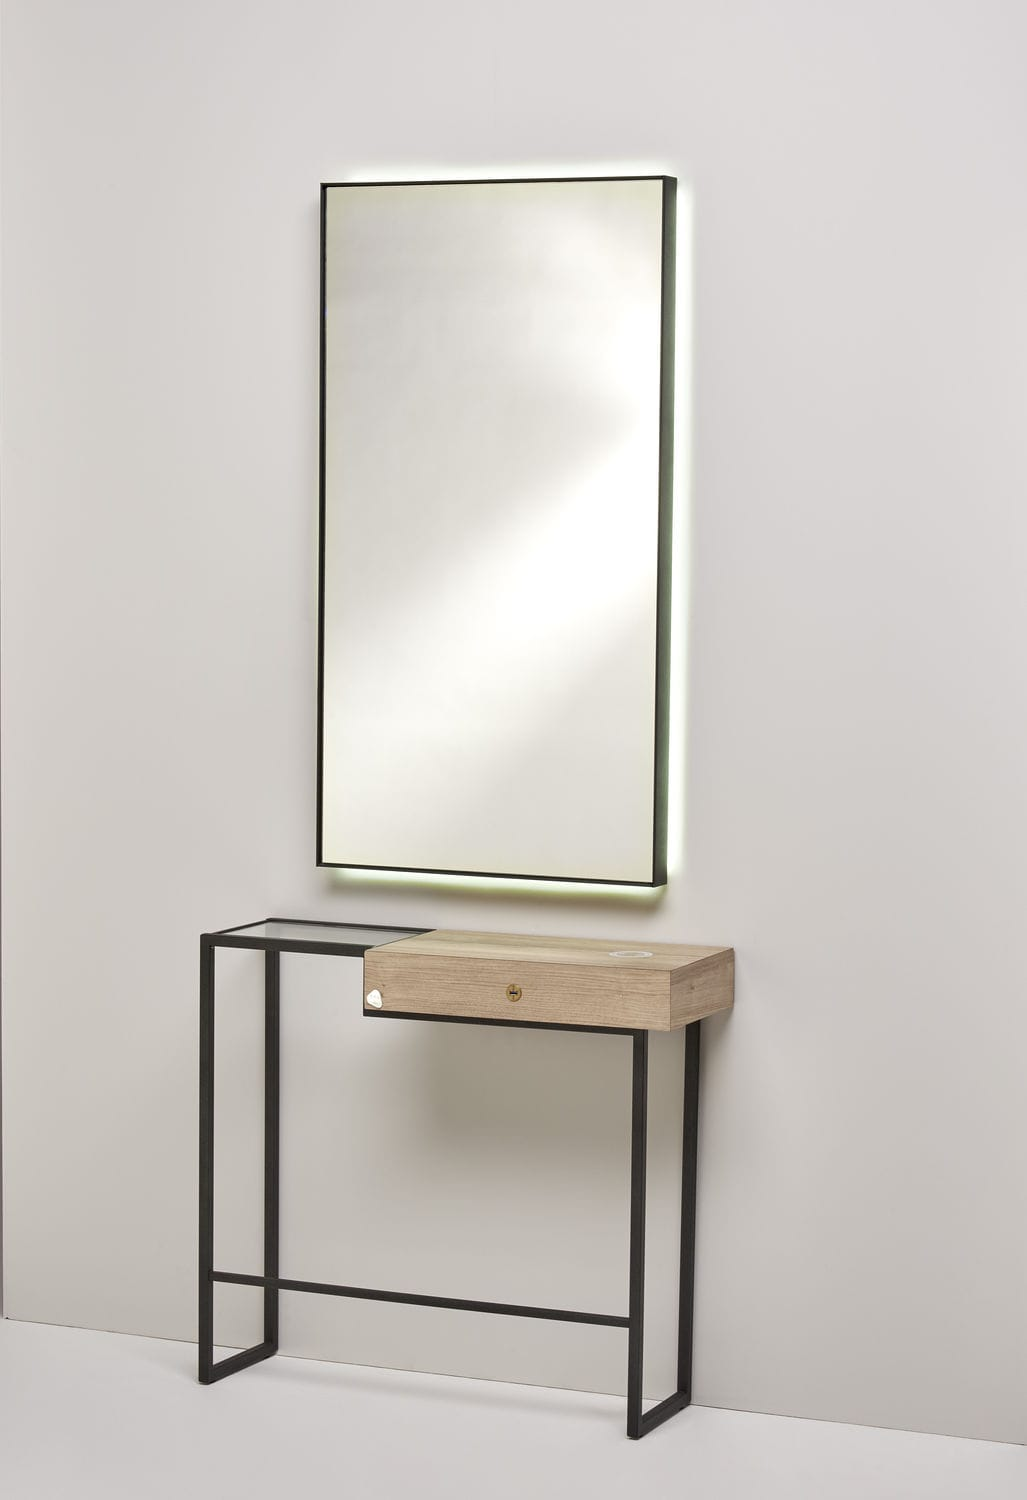 Glass dressing table - Contemporary Dressing Table Wooden Metal Tempered Glass Well Smart 2080 Bmp Srl